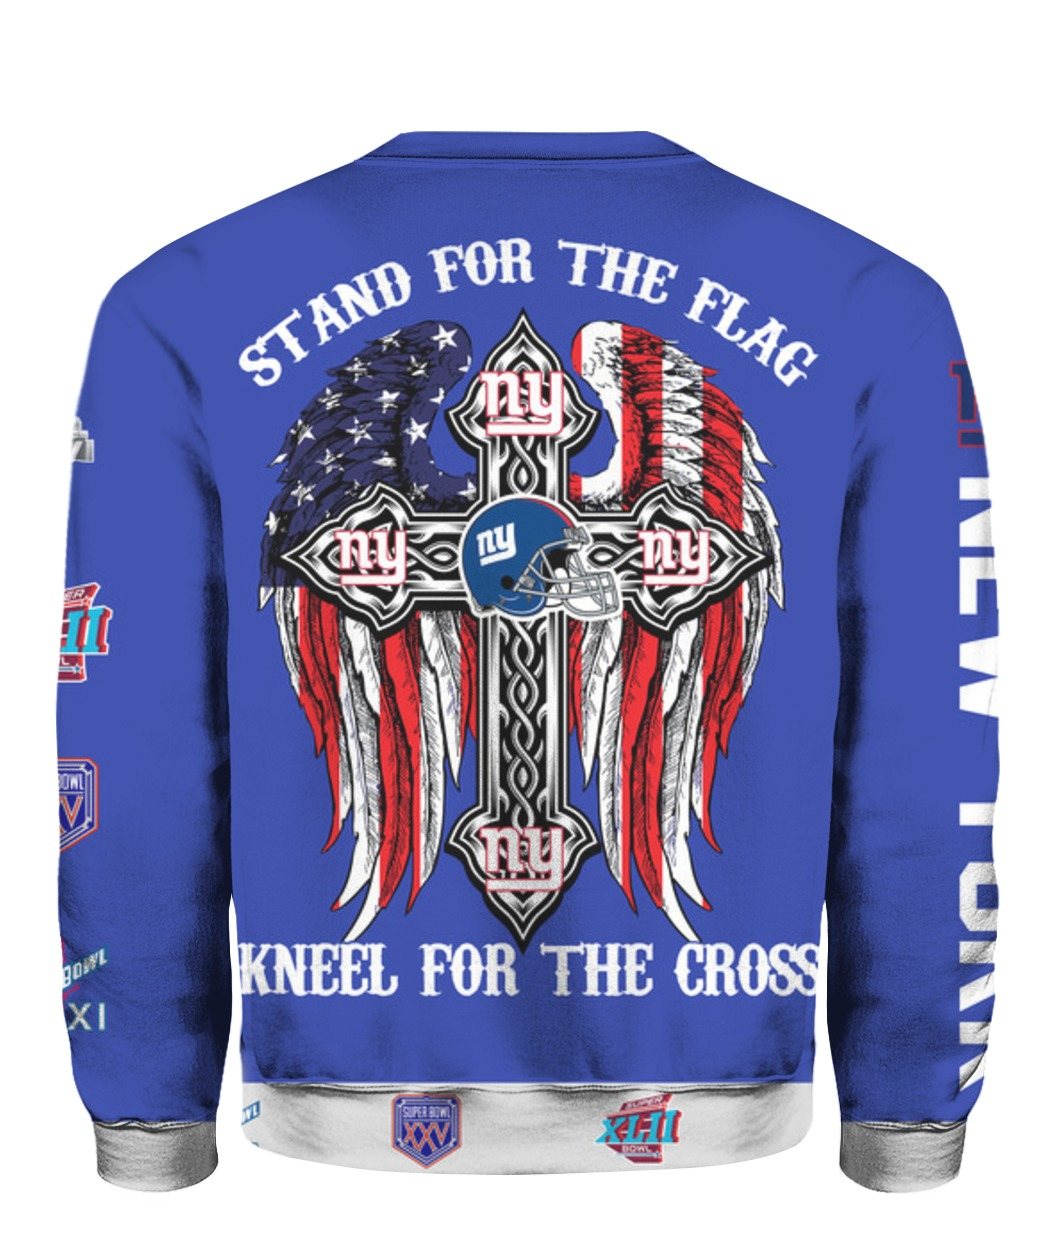 Stand for the flag kneel for the cross new york giants all over print sweatshirt - back